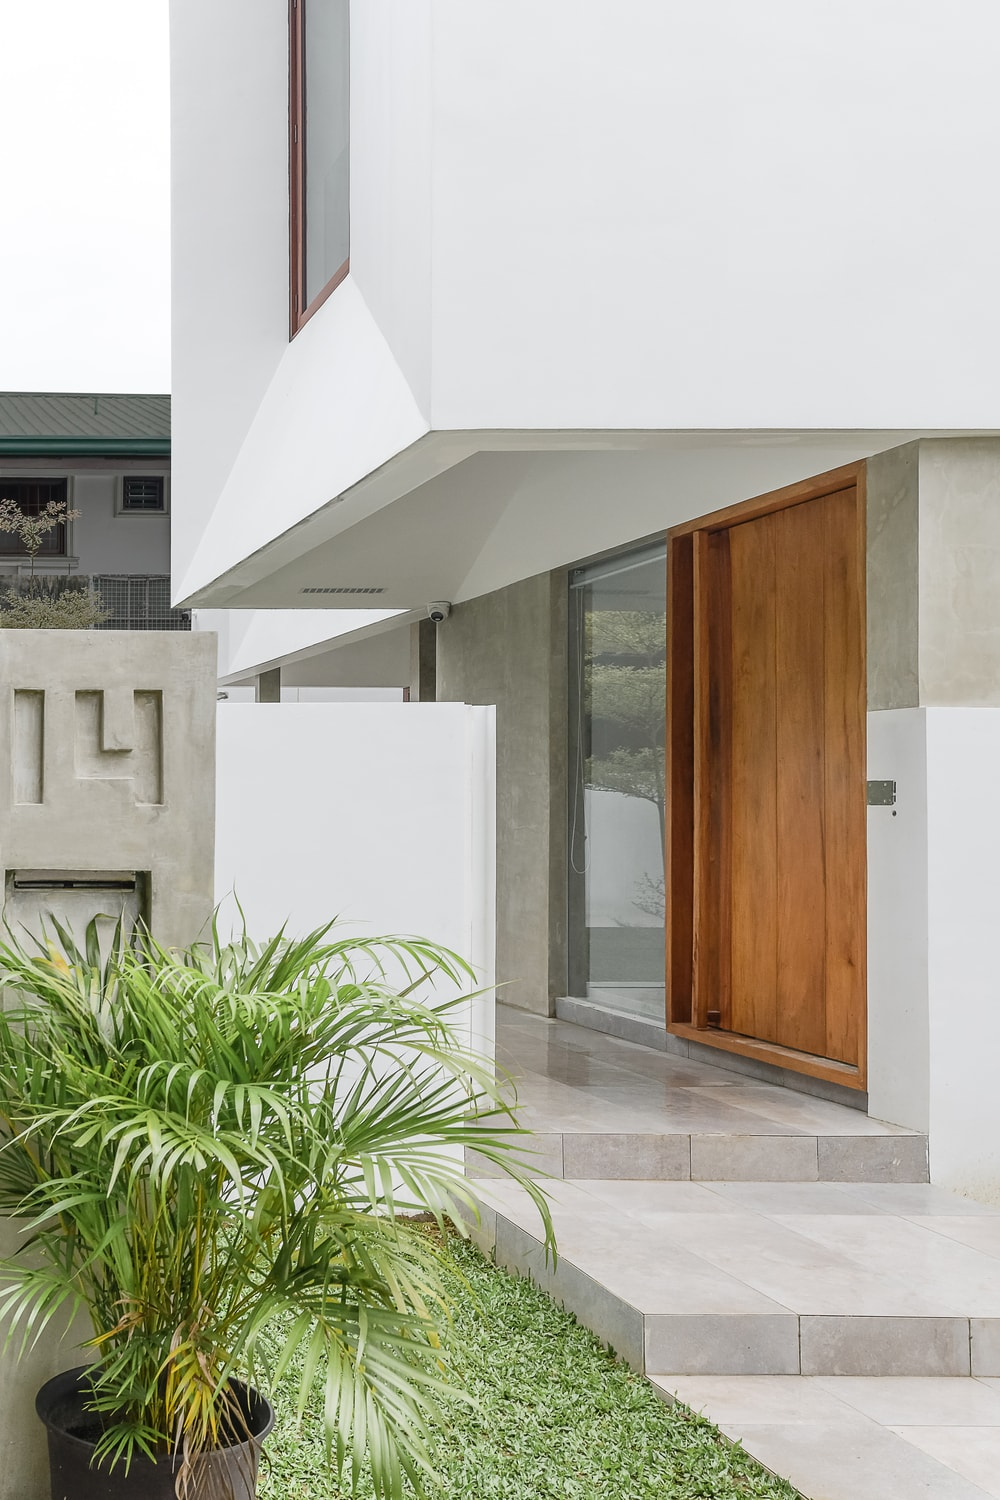 This is a close look at the main door of the house with a large wooden door that has a glass wall on the side.